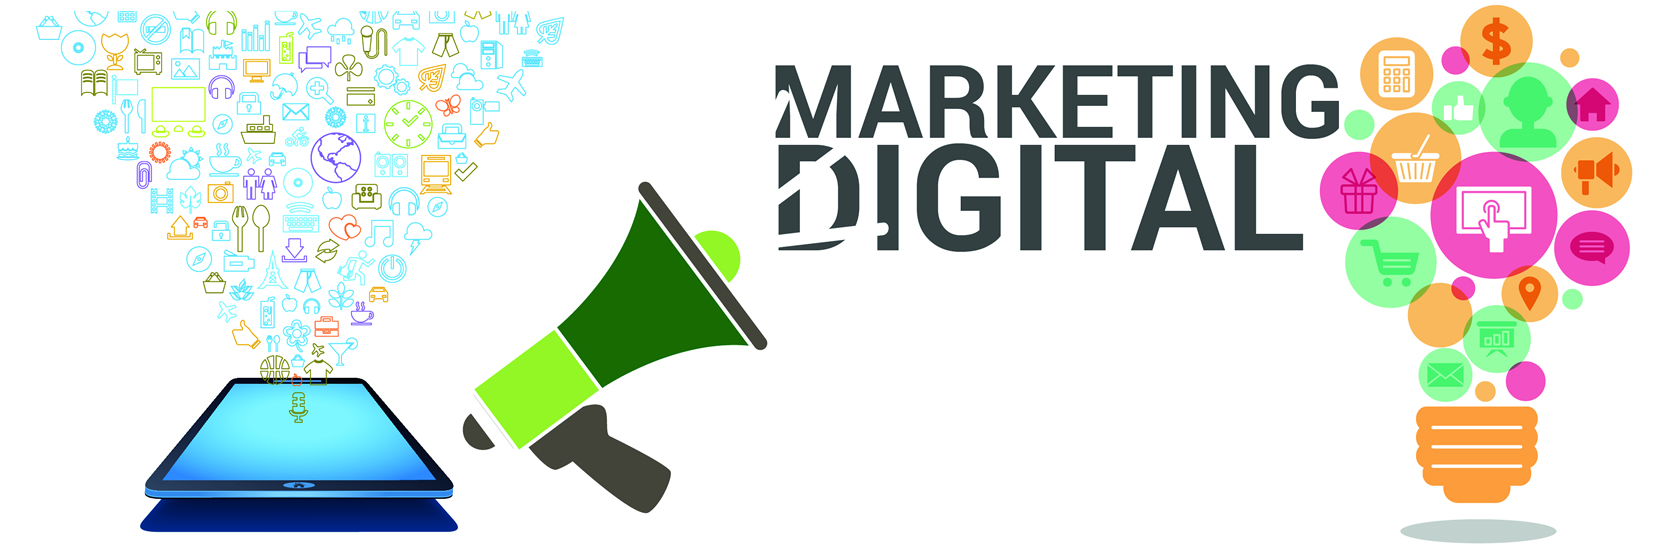 Marketing Digital - WebByte